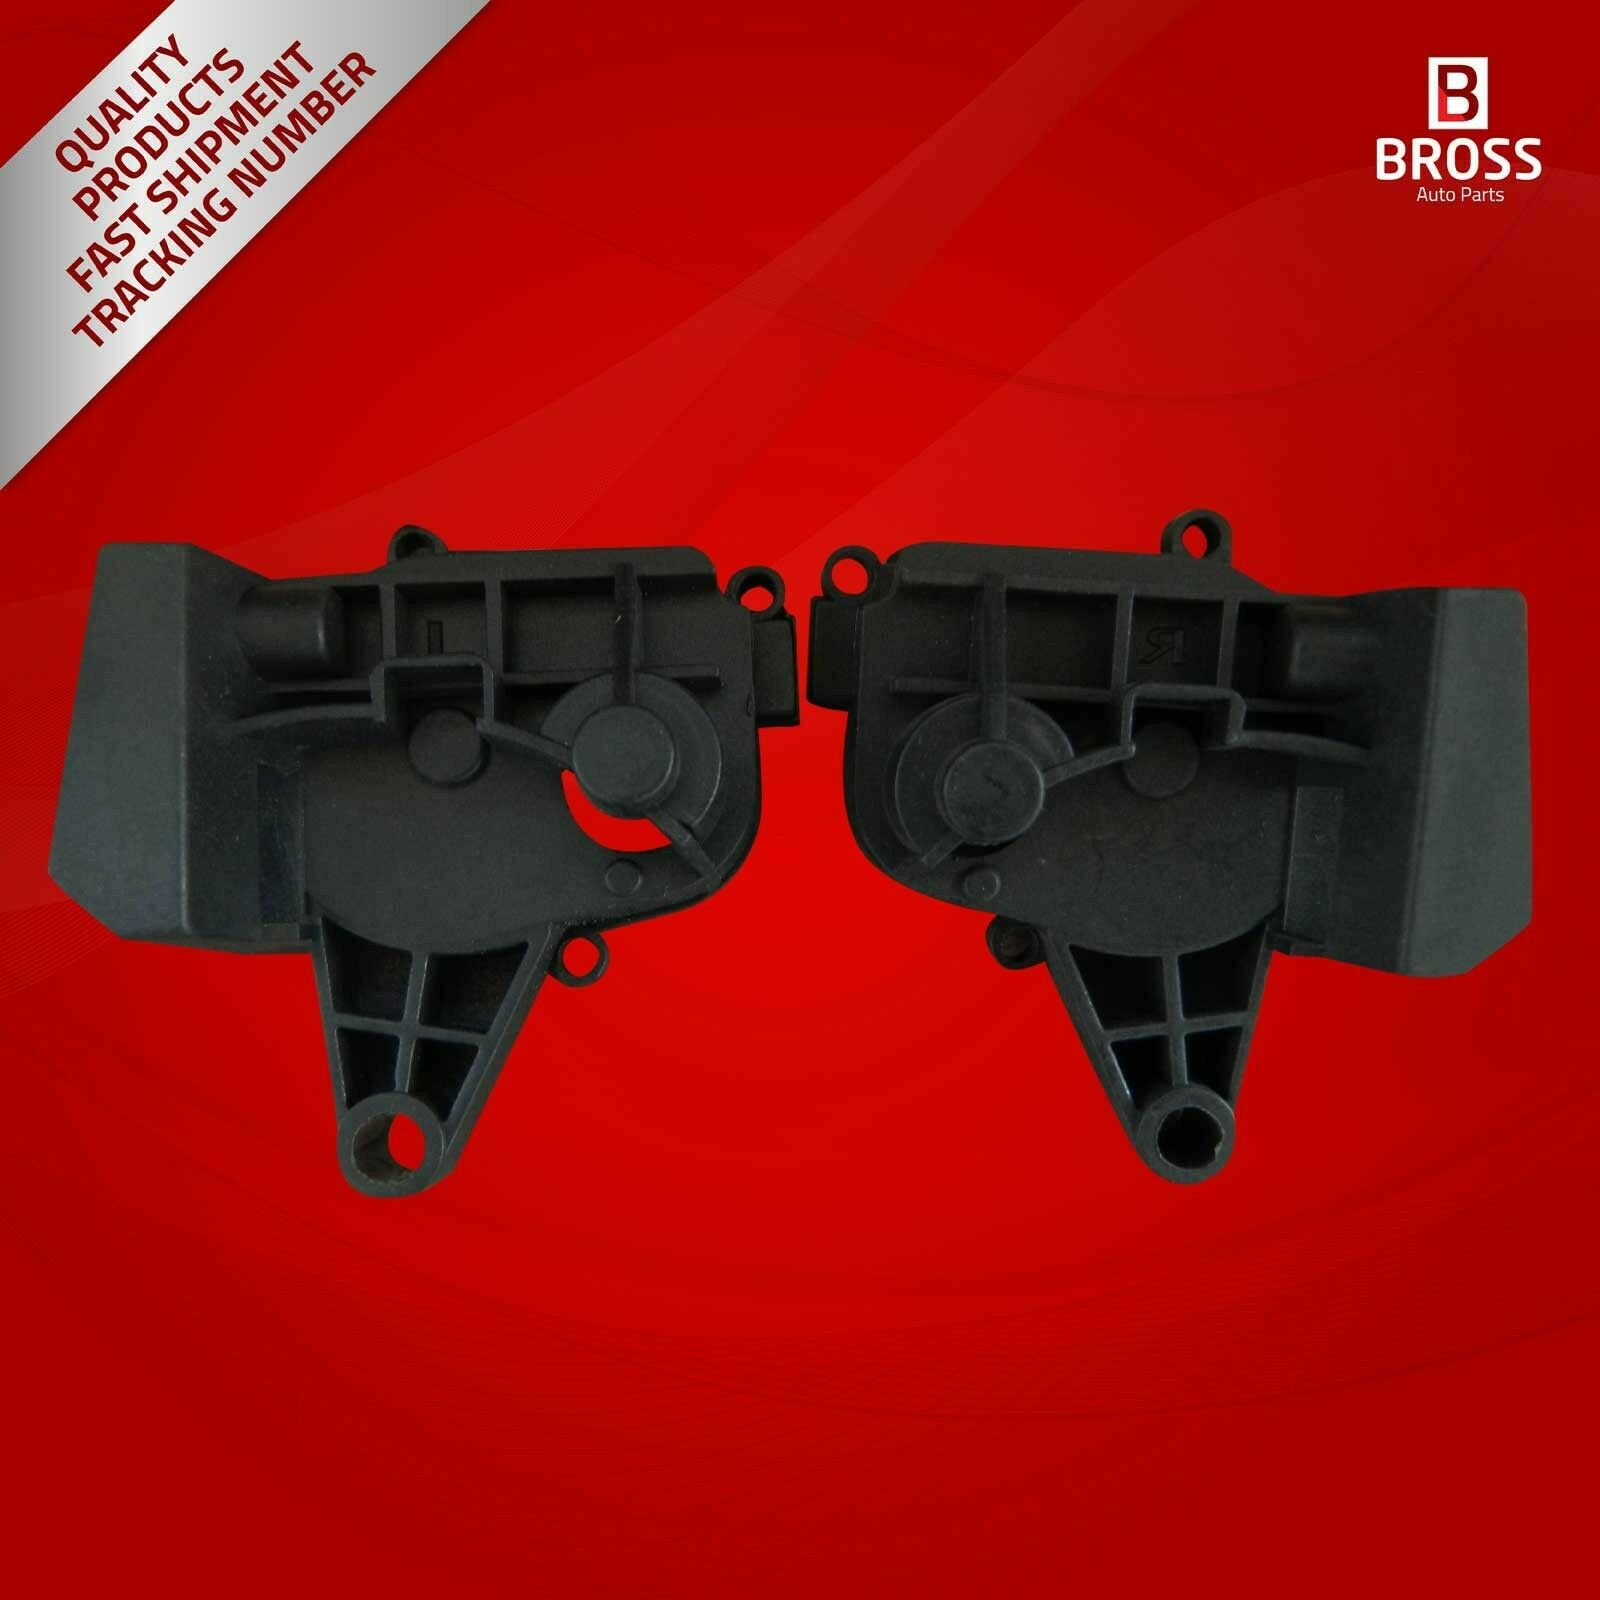 Bross BDP505 Side Mirror Repair Plastic Parts For M. E. R. C. E. D. E. S